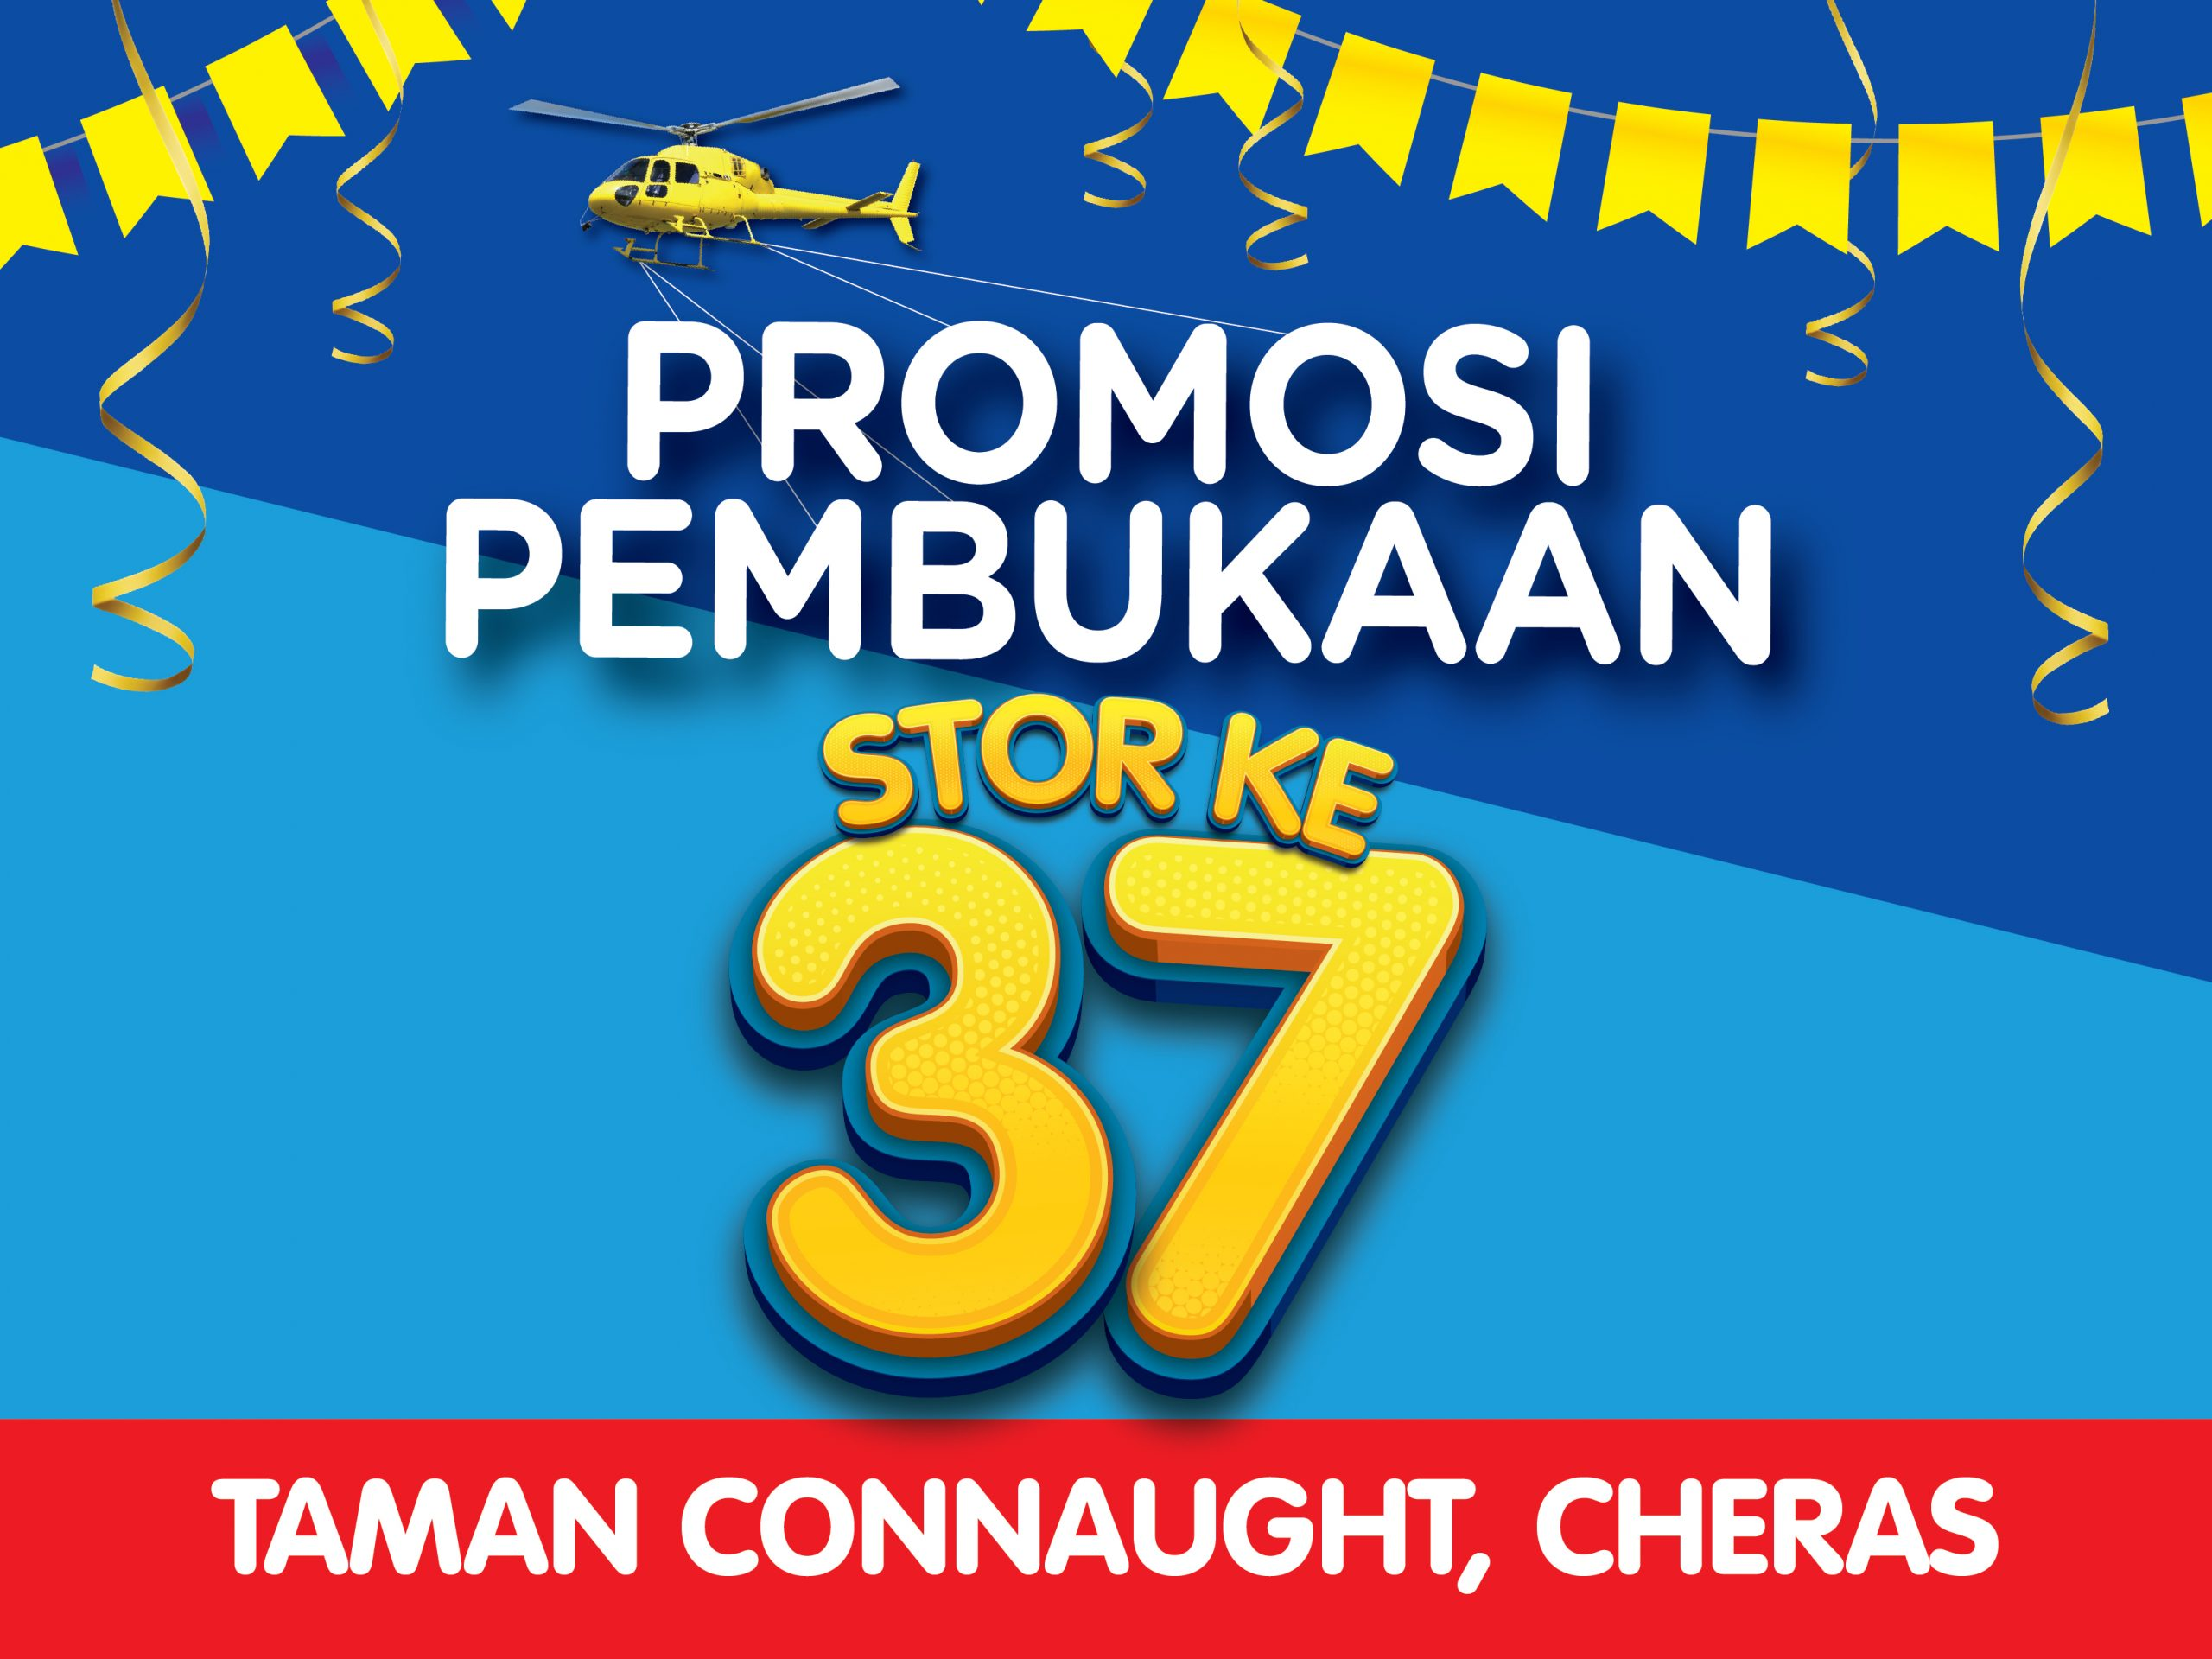 TFVM 37th Outlet Opening Promotion (Valid from: 22 Oct – 31 Oct 2021)